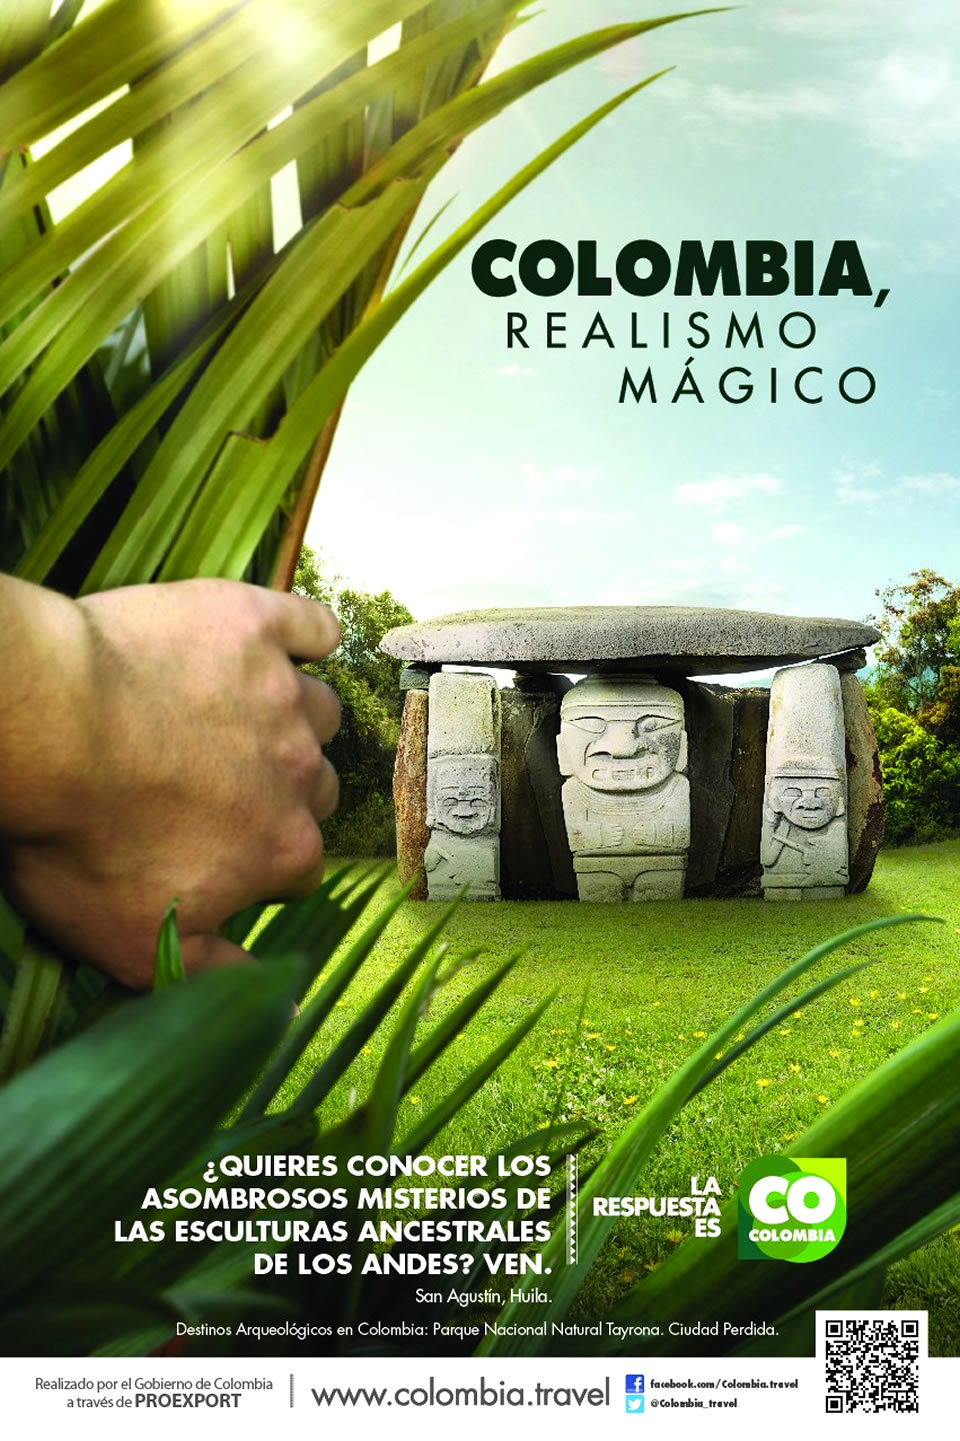 San Agustin Tourism Advertisement Poster of Colombia Magical Realism